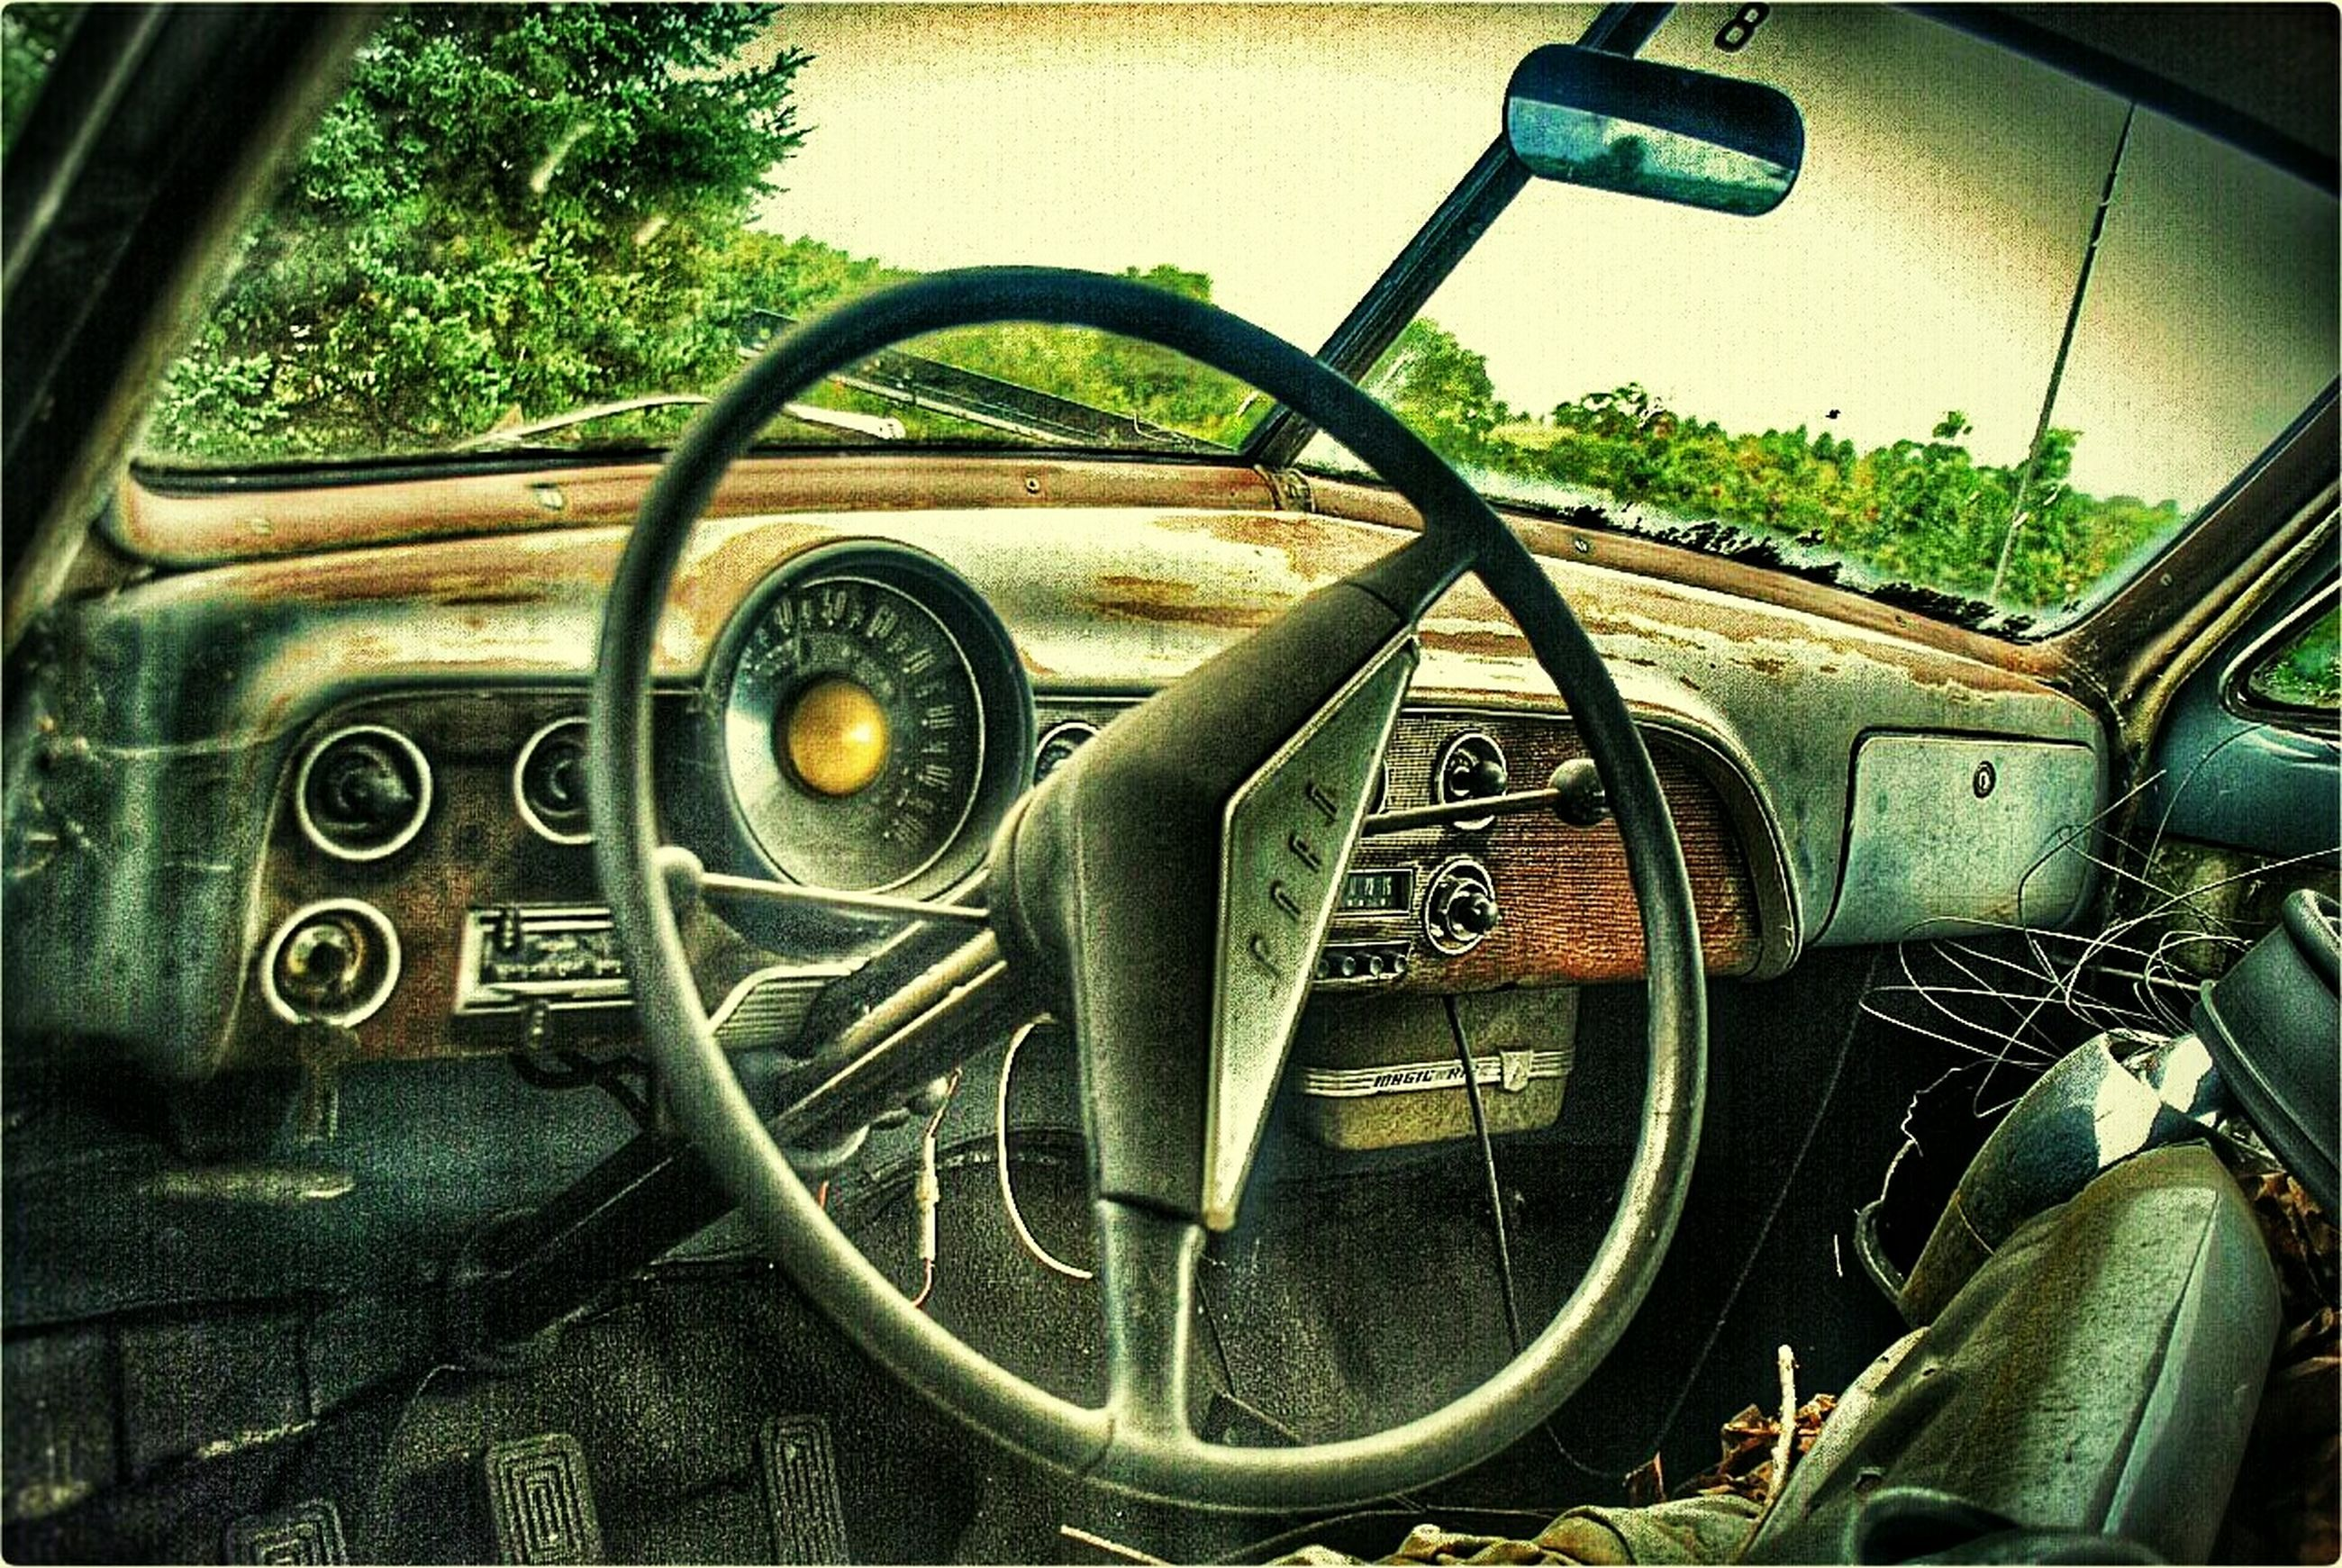 metal, transportation, land vehicle, mode of transport, abandoned, old, obsolete, wheel, metallic, indoors, rusty, old-fashioned, plant, no people, stationary, day, run-down, close-up, damaged, deterioration